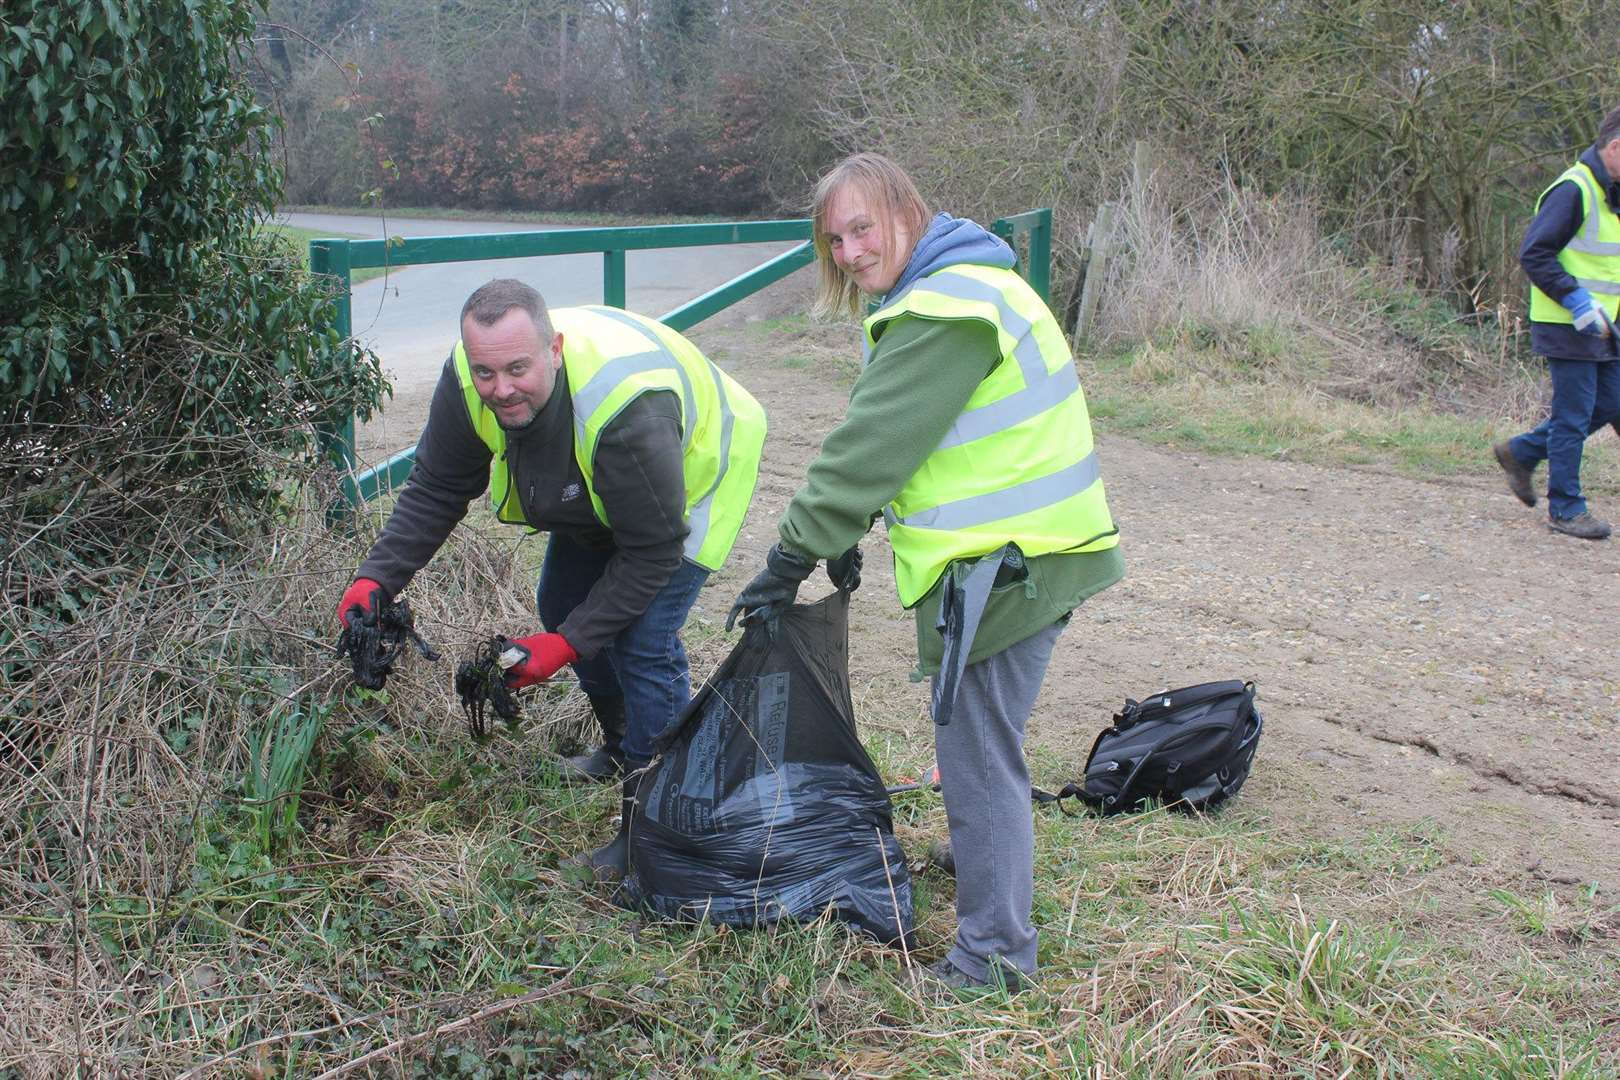 Flytipping Watch's founder Mark Douglass with a volunteer, clearing up litter on Stumps Lane (image provided by Flytipping Watch) (7412028)